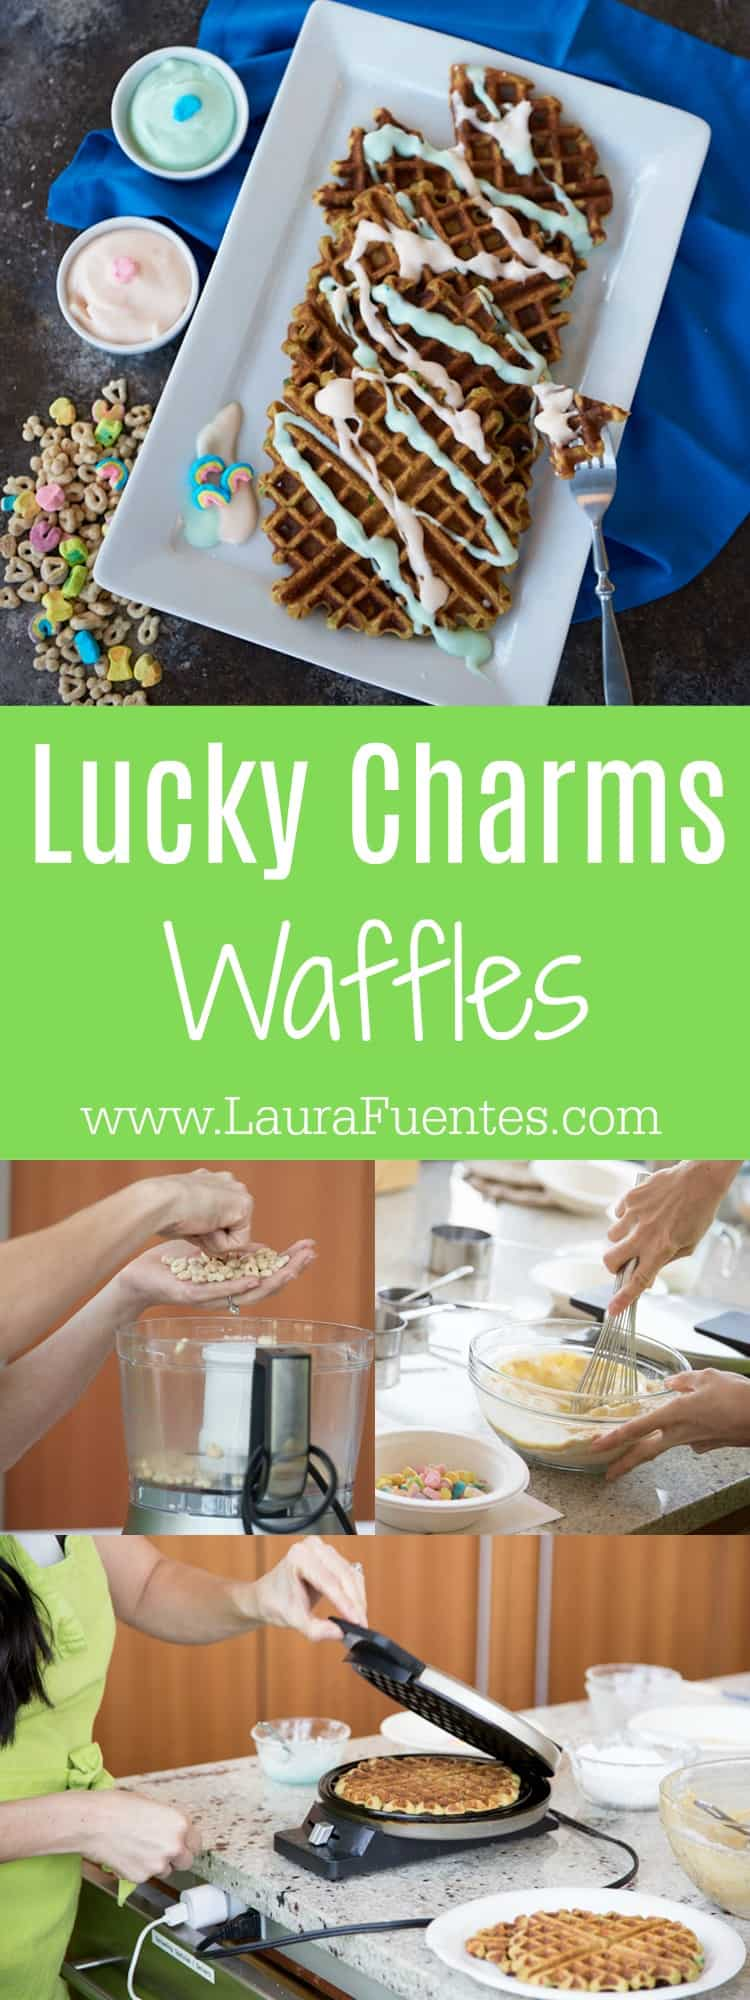 Candy? For breakfast? Let me tell you, these Lucky Charm Waffles aren't just for kids..